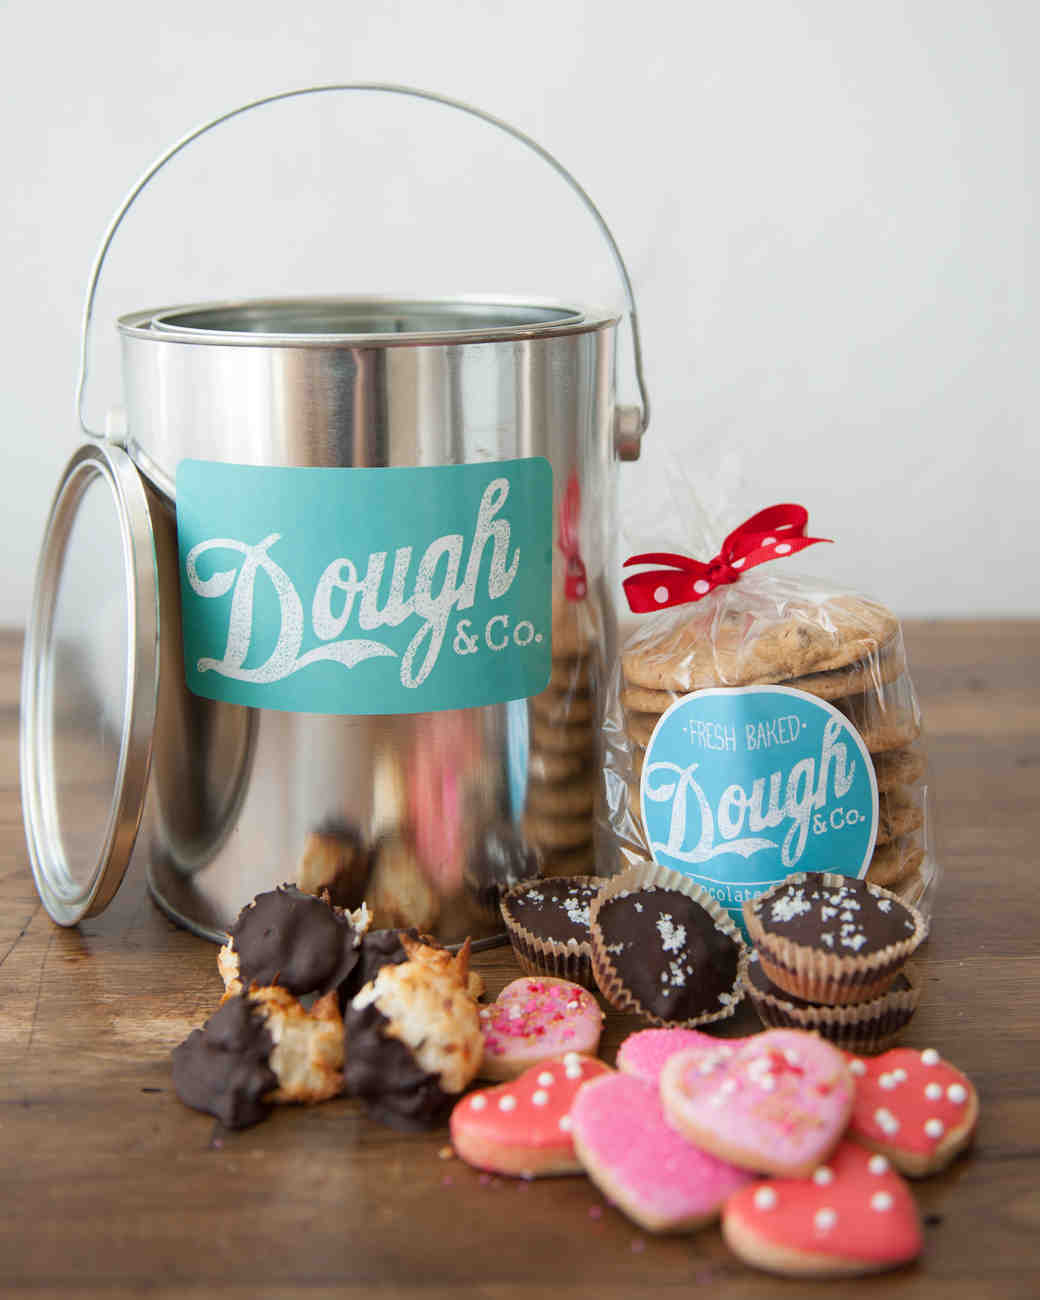 dough-and-co-valentines-pail-0214.jpg